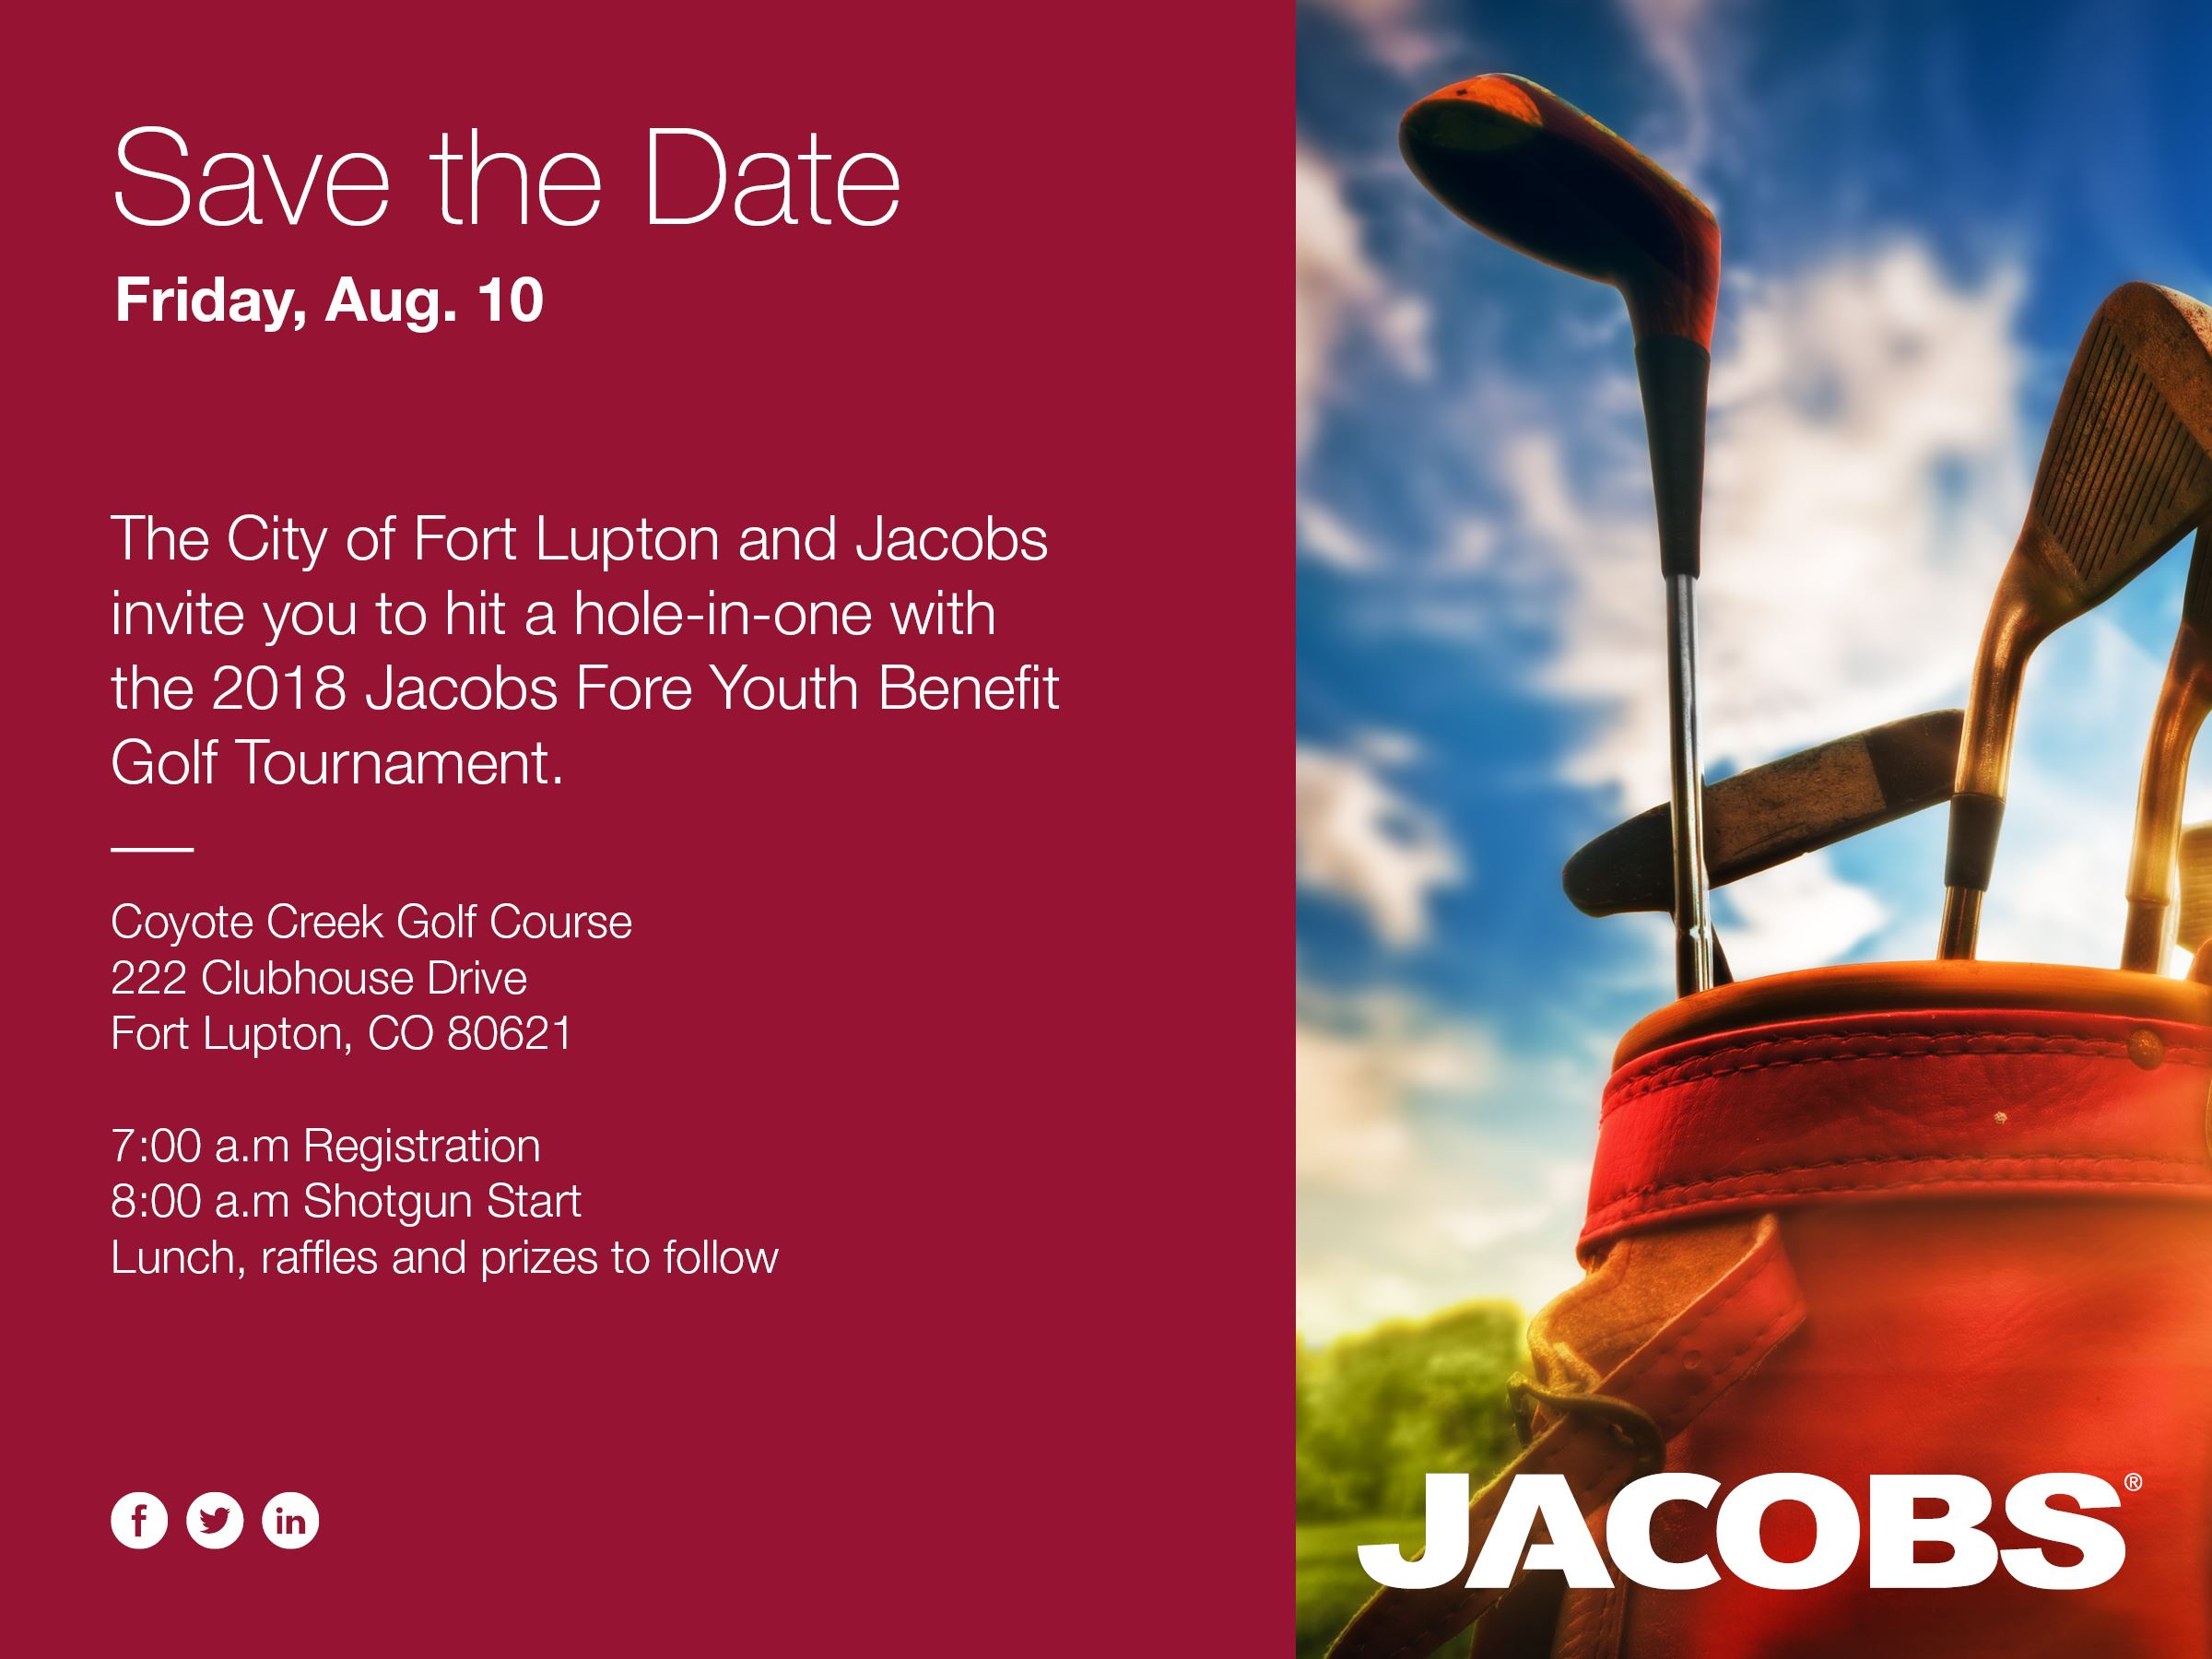 Fort_Lupton_Golf tourney 2018_Save the Date